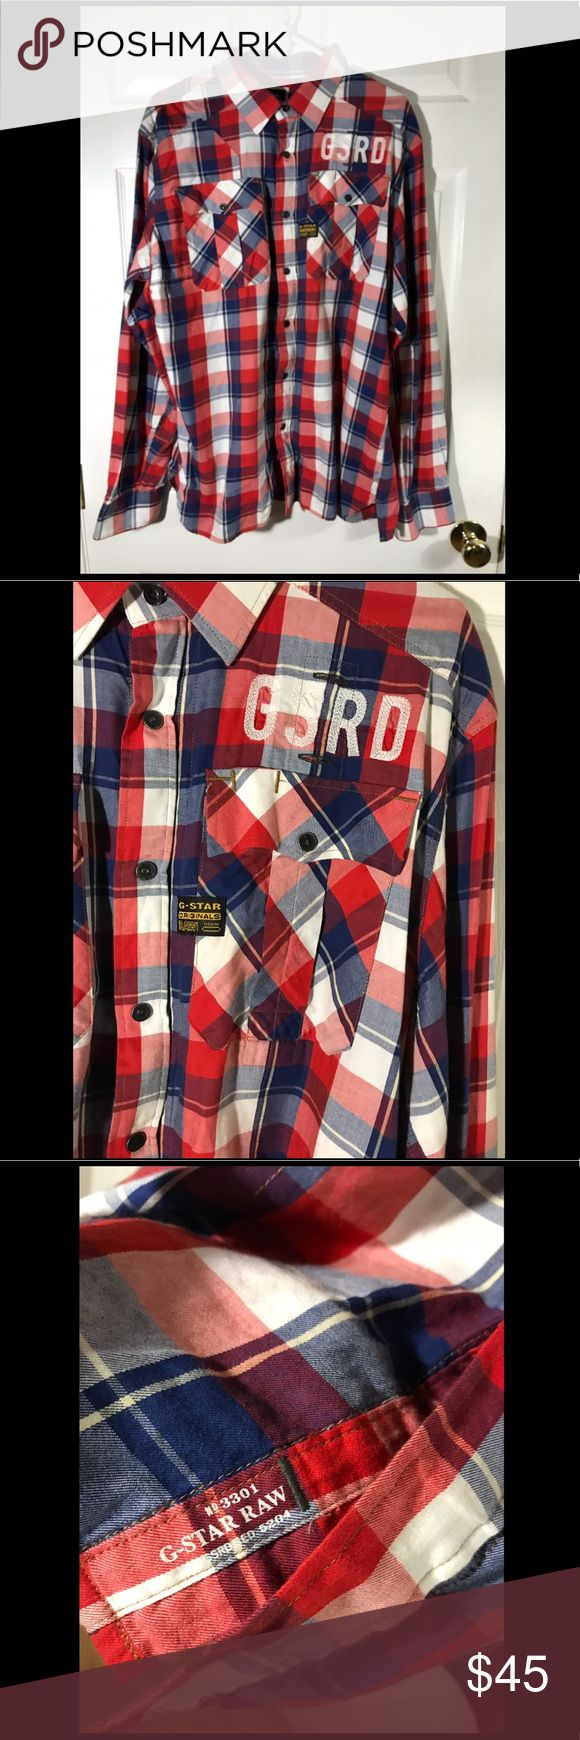 """G-Star Raw Denim Tunnel Phelps Long Sleeve Button G-Star Raw Denim Tunnel Phelps Shirt Long Sleeve Red Blue White Button Down  Pre-owned, Worn once !  100% Authentic  Size 2XL  Pit to Pit 24""""  Top to Bottom 30""""  Shoulder to cuff 32""""  Also has a zipper alongside with buttons!  Fast Shipping! G-Star Shirts Casual Button Down Shirts"""